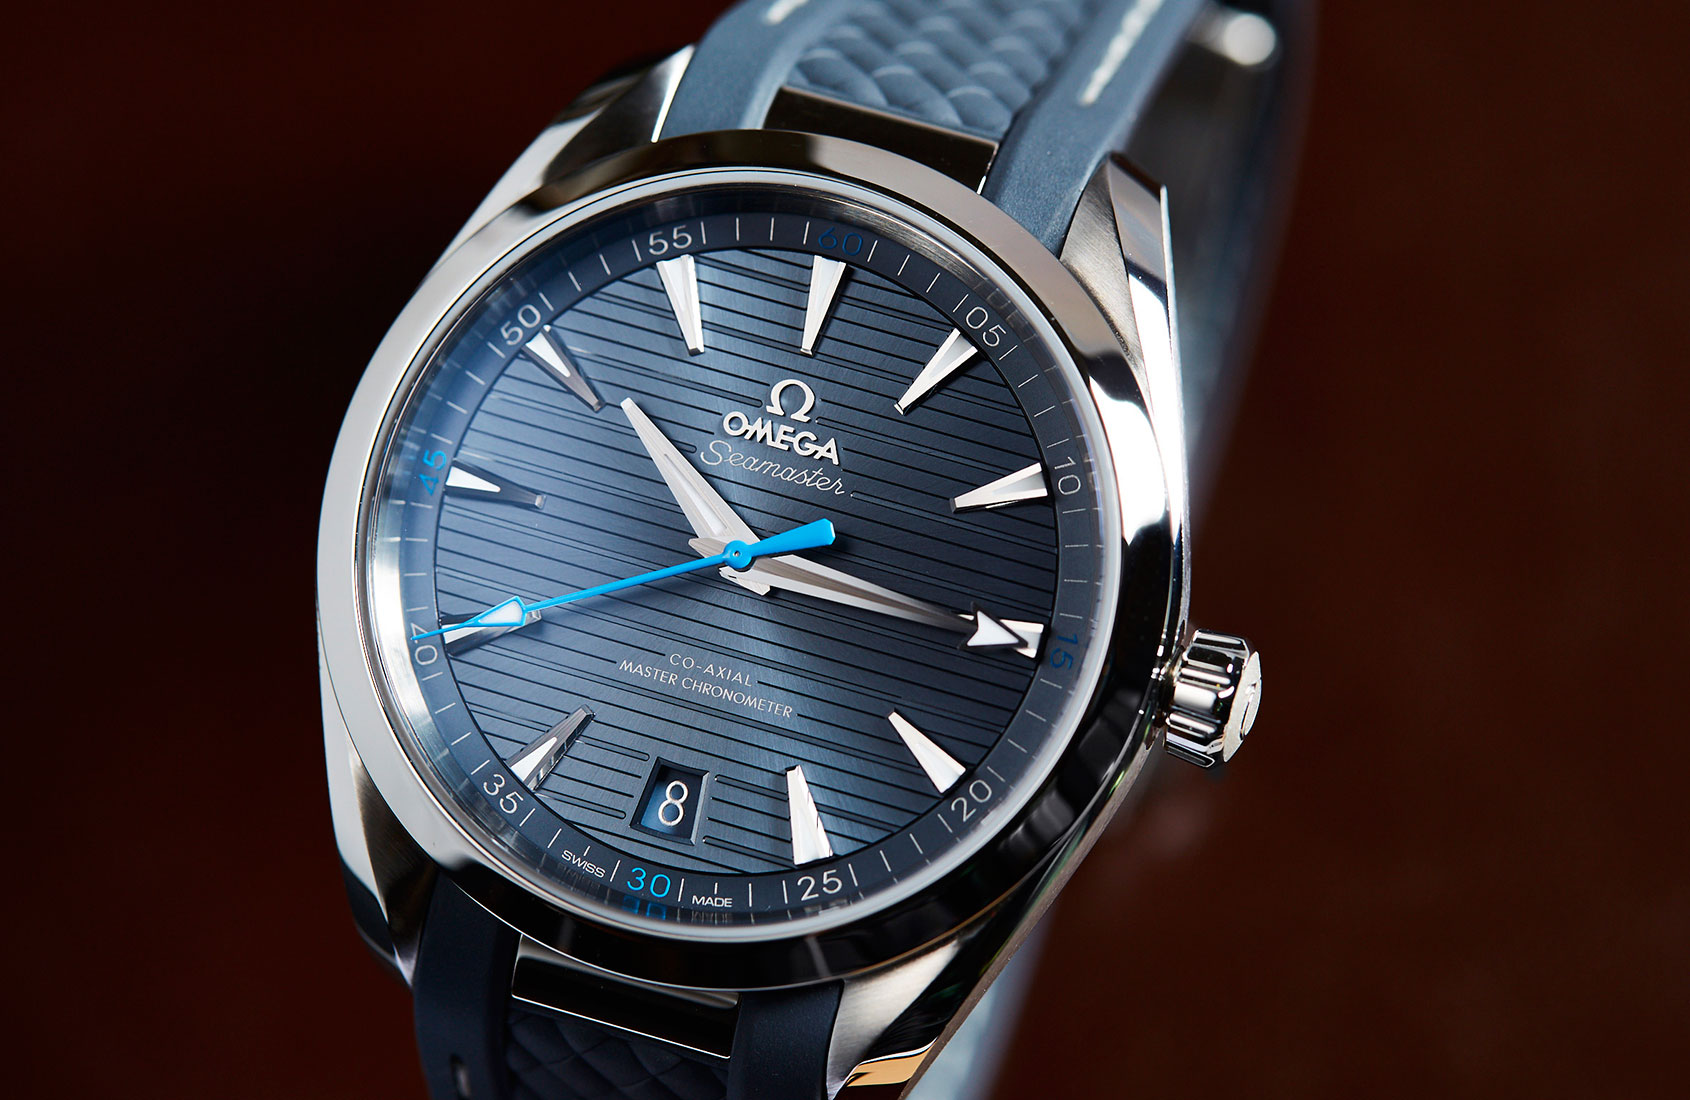 Omega Seamaster Aqua Terra Master Chronometer In Depth Review